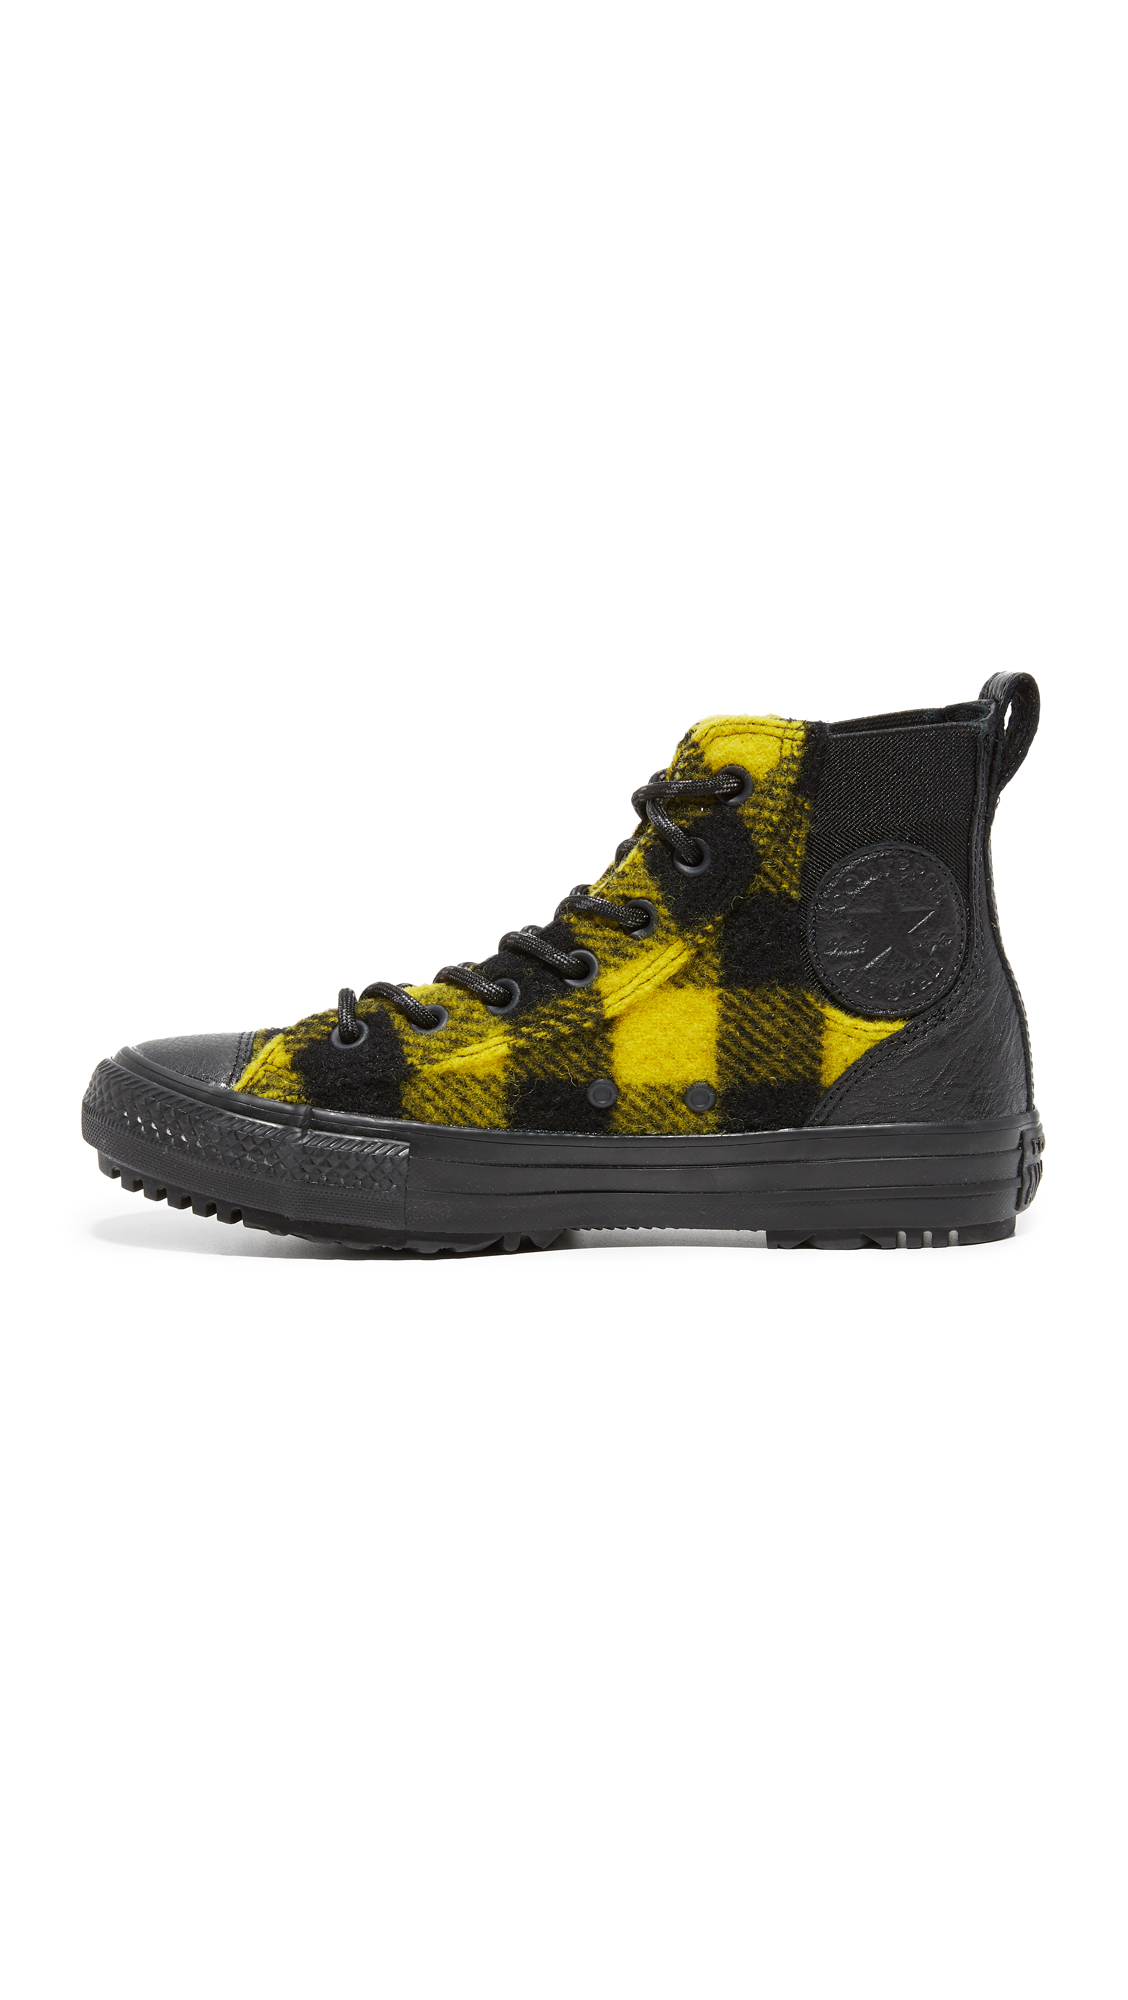 7d0454a4d0c1 Converse Chuck Taylor x Woolrich All Star Chelsea High Top Sneakers ...